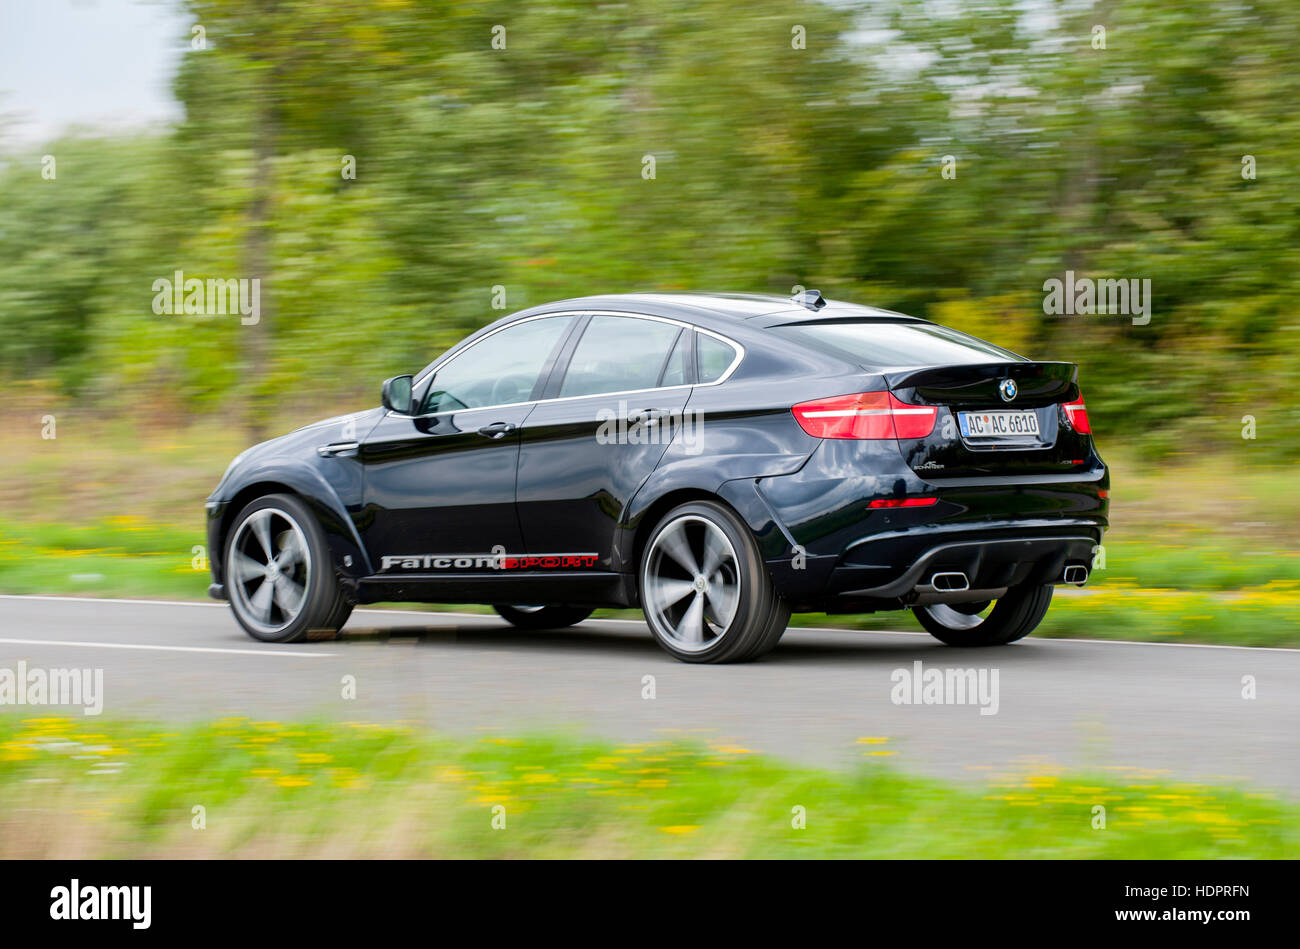 2009 ac schnitzer bmw x6 m high performance suv modified by authorised tuning house ac schnitzer